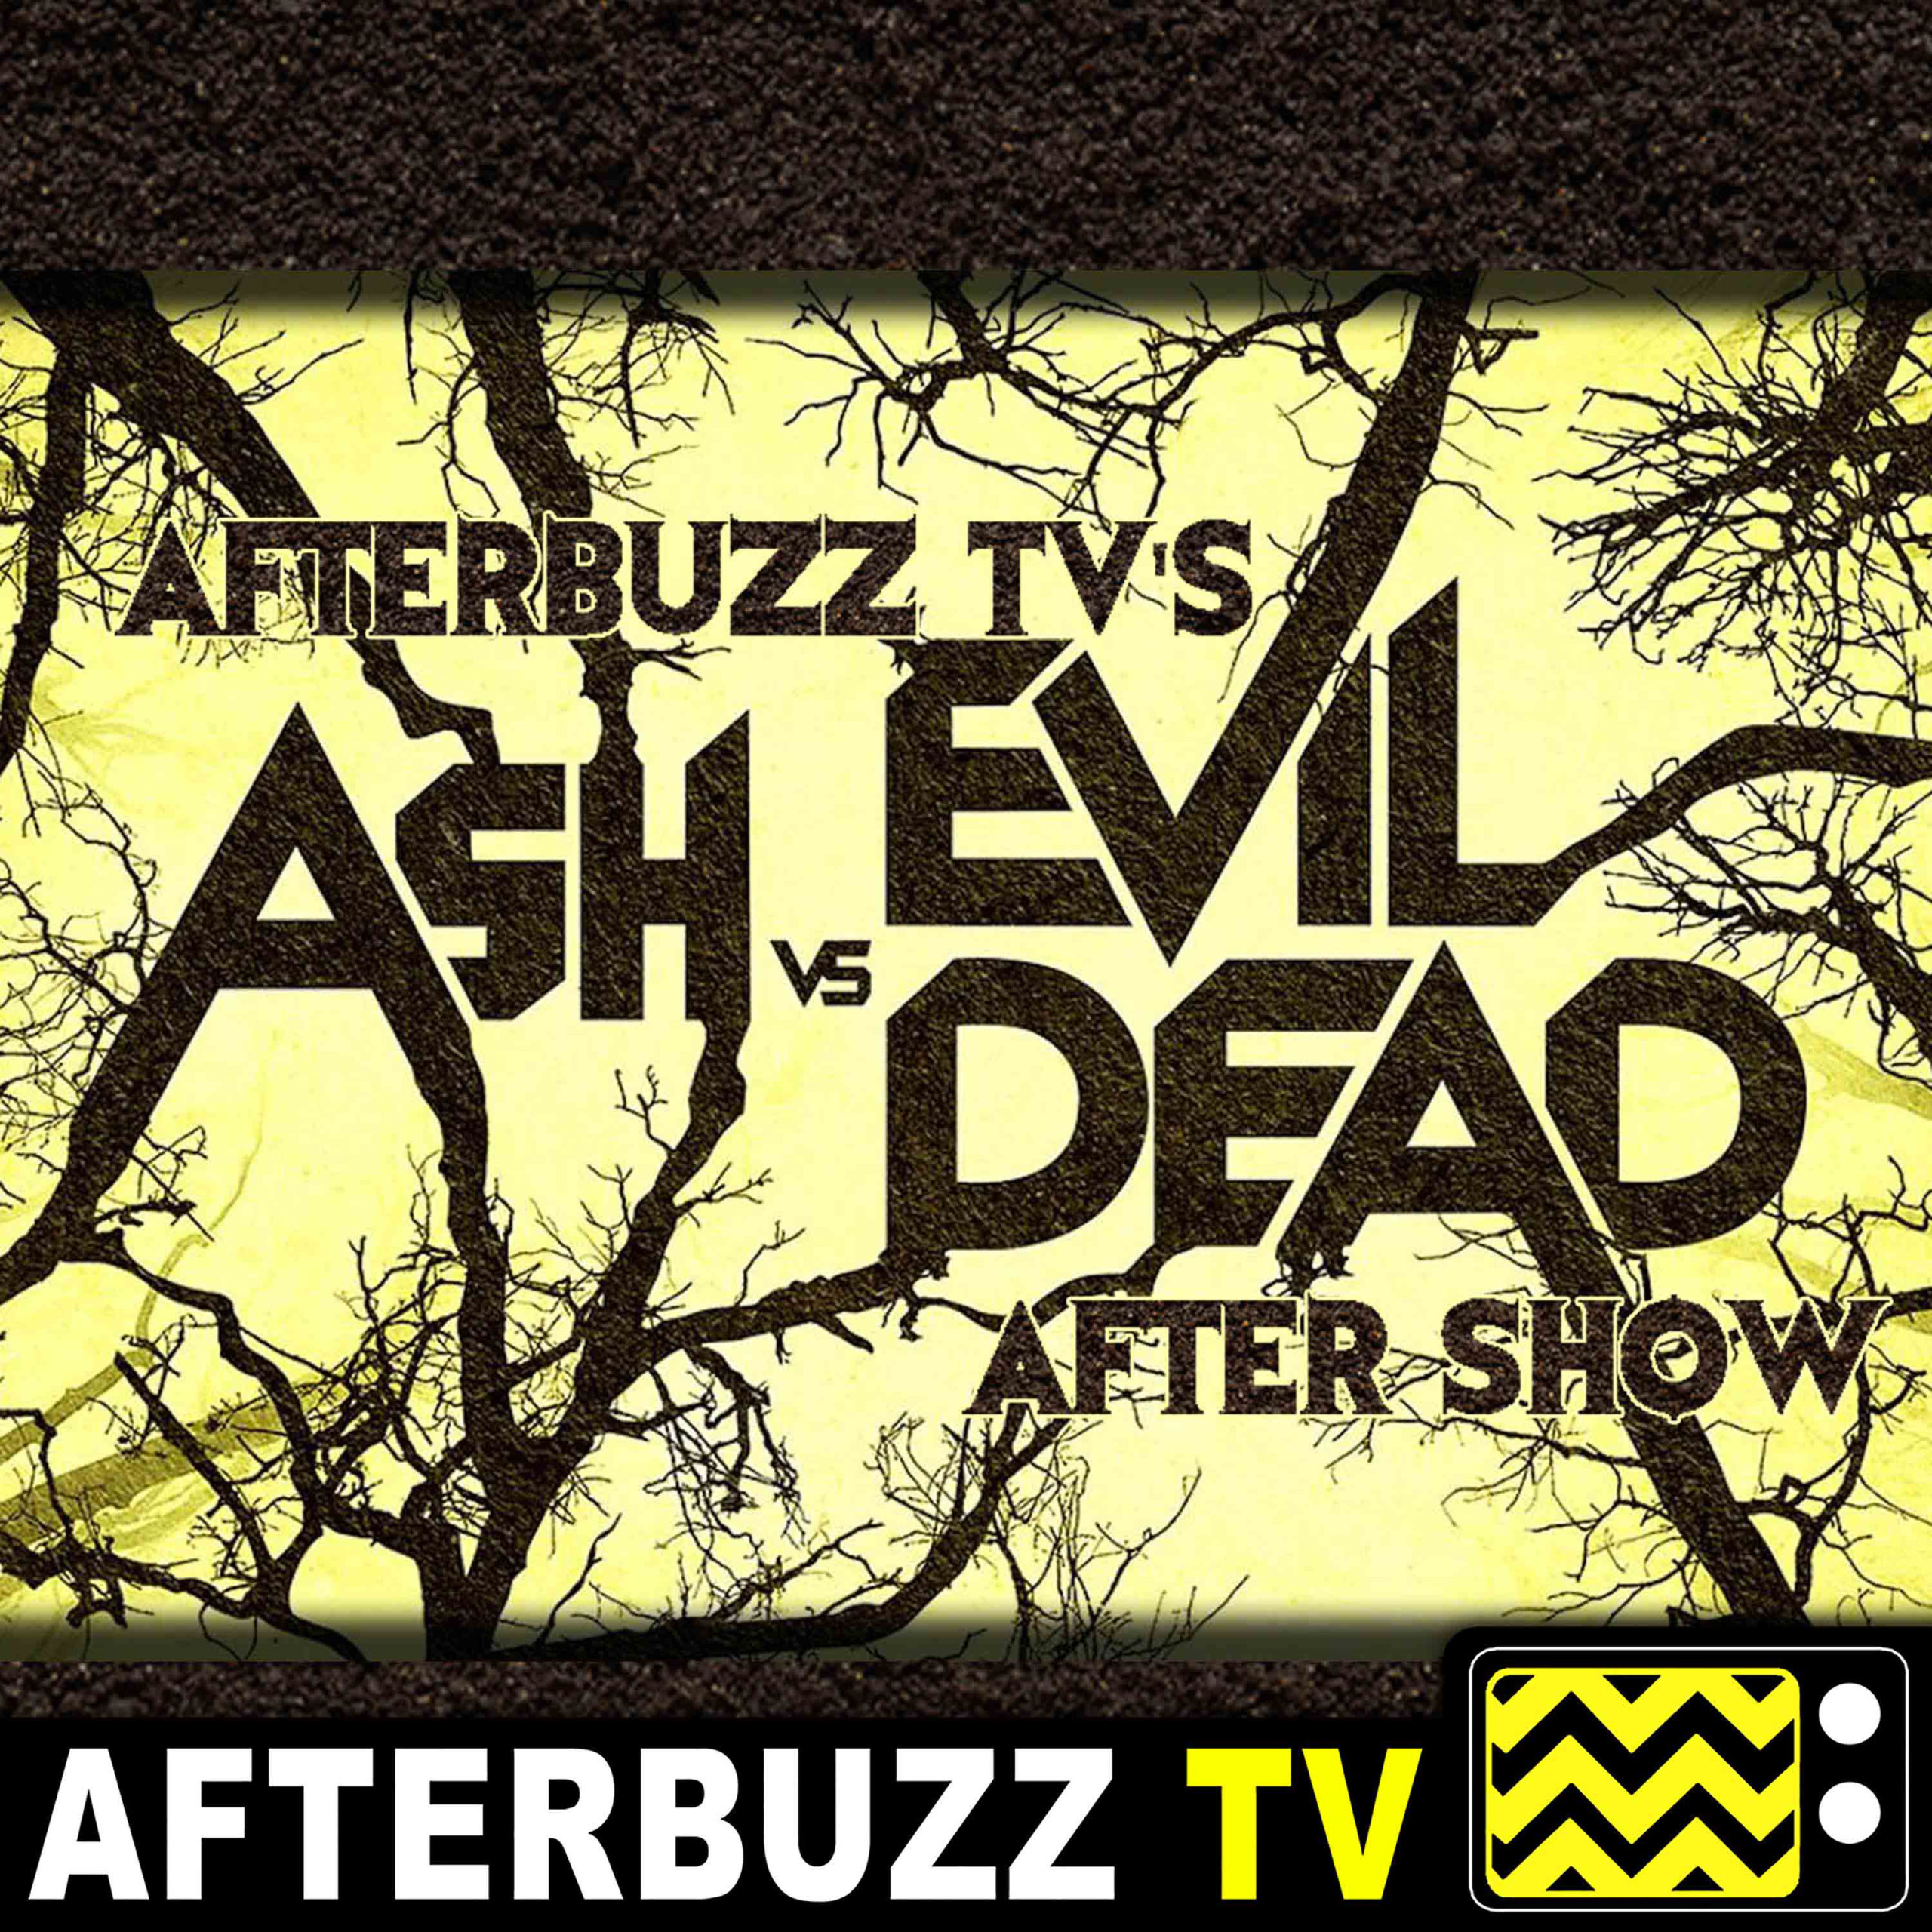 The Ash vs Evil Dead Podcast